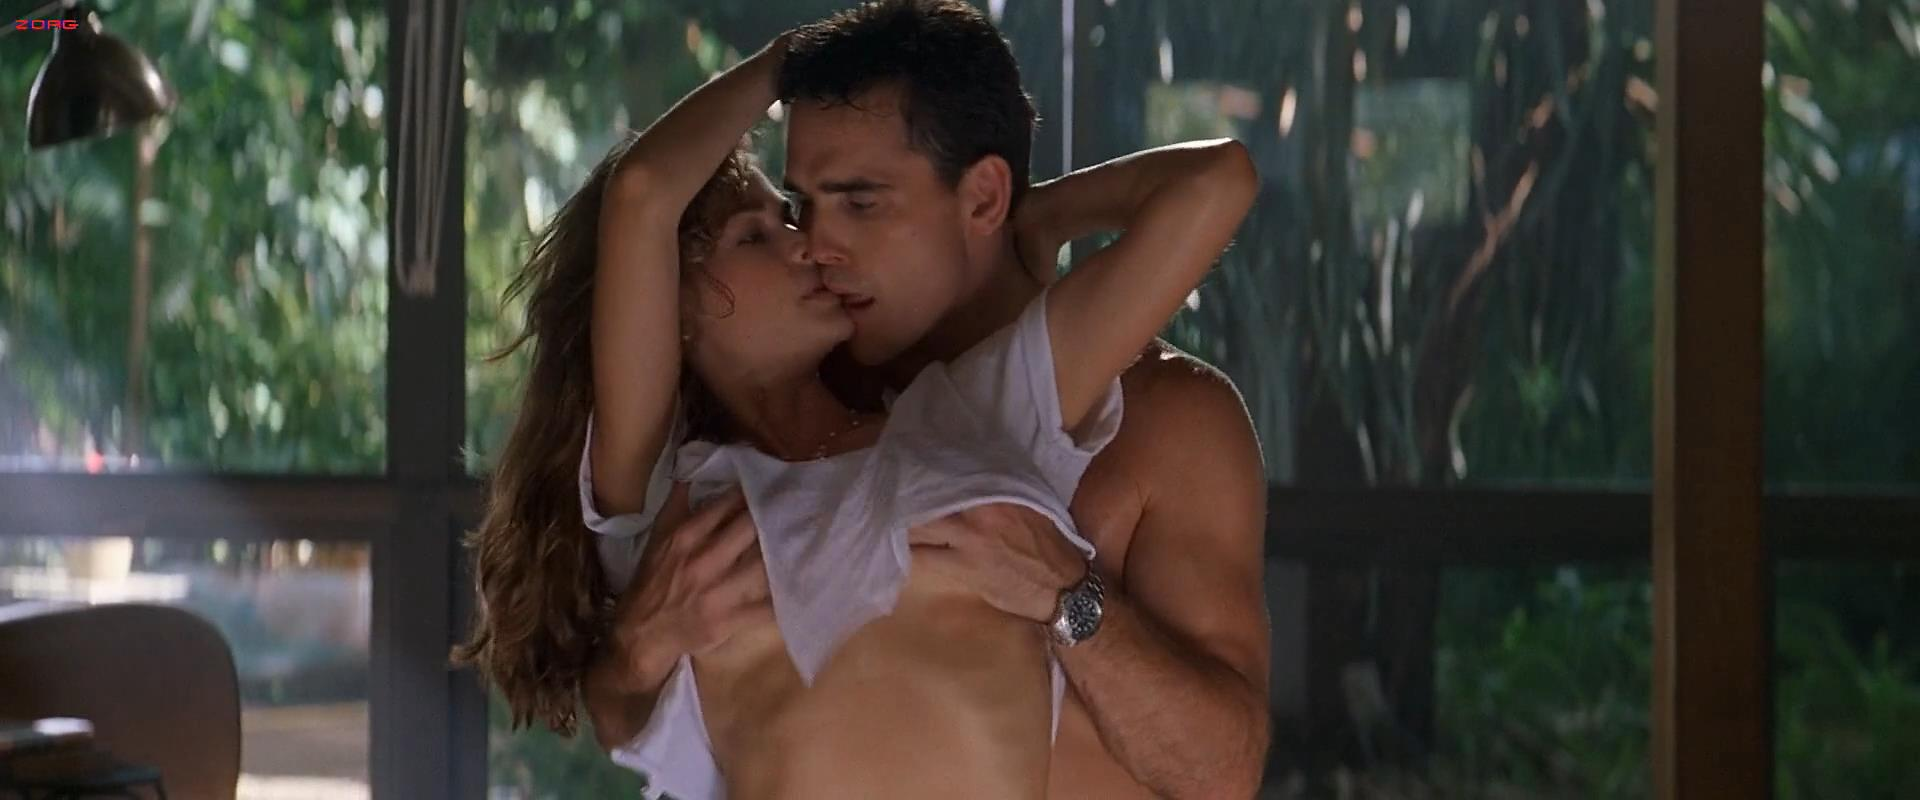 denise richards sex wild things